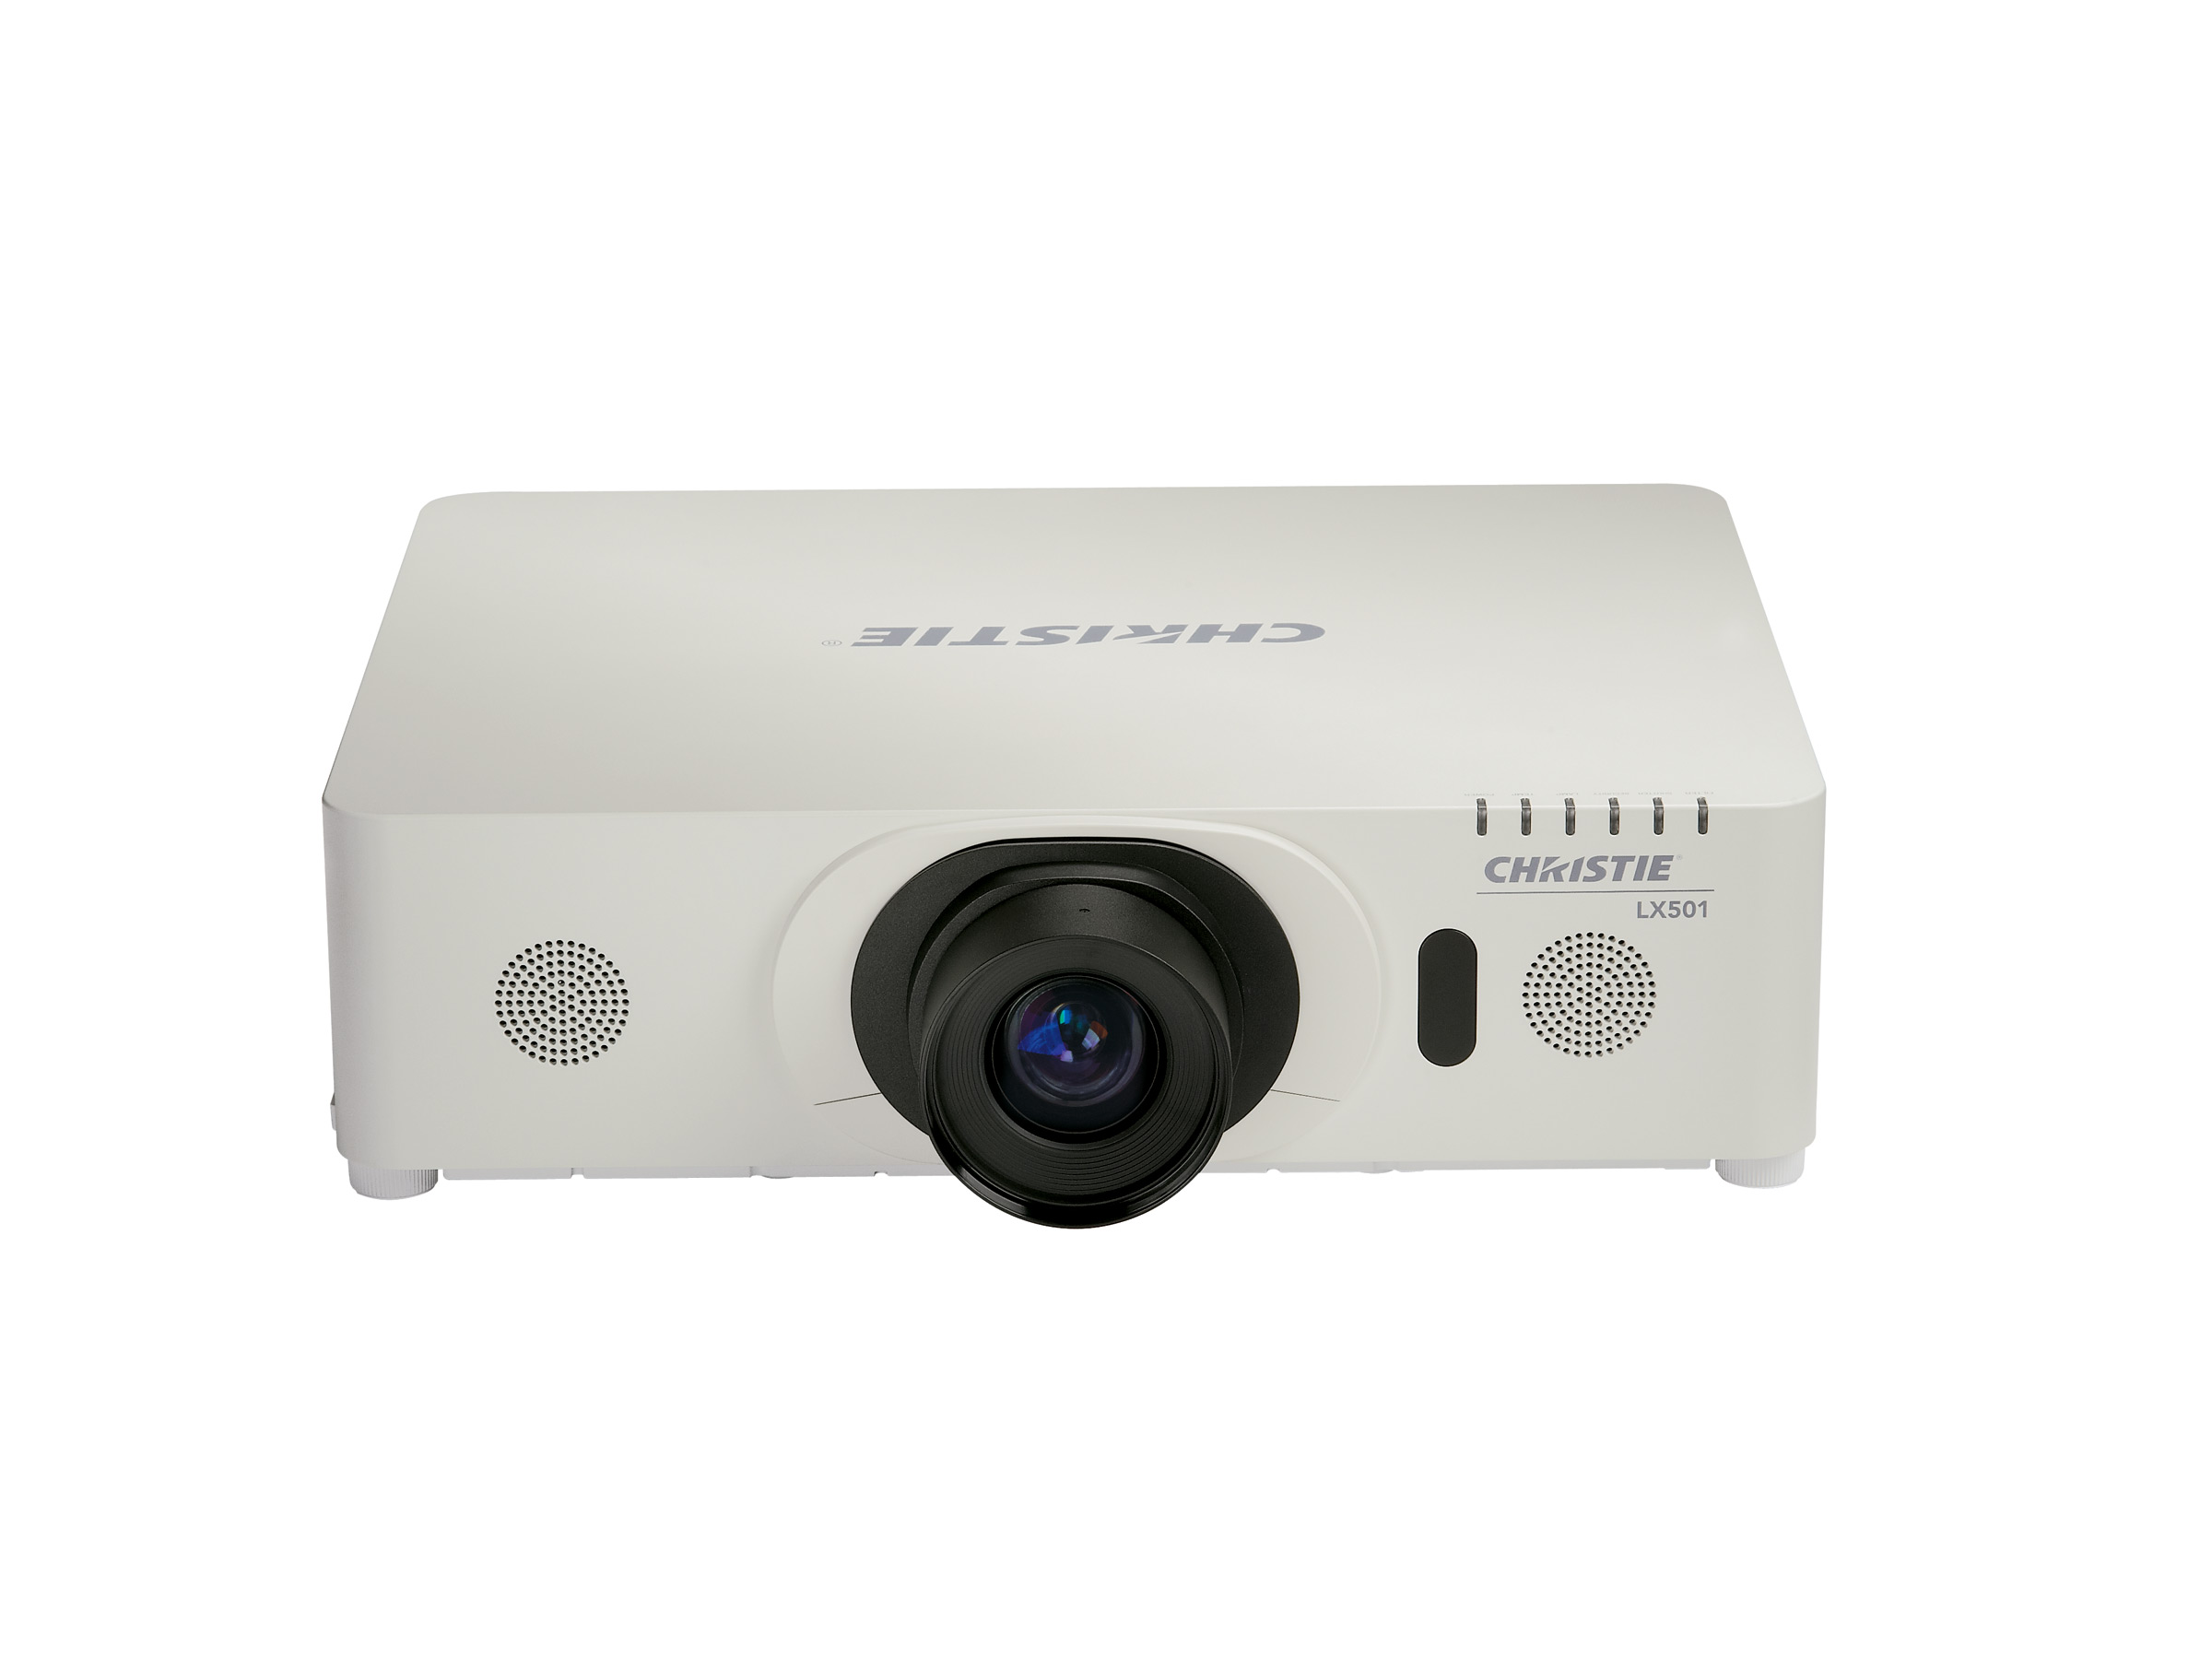 /globalassets/.catalog/products/images/christie-lx501/gallery/christie-lx501-3lcd-digital-projector-image-2.jpg